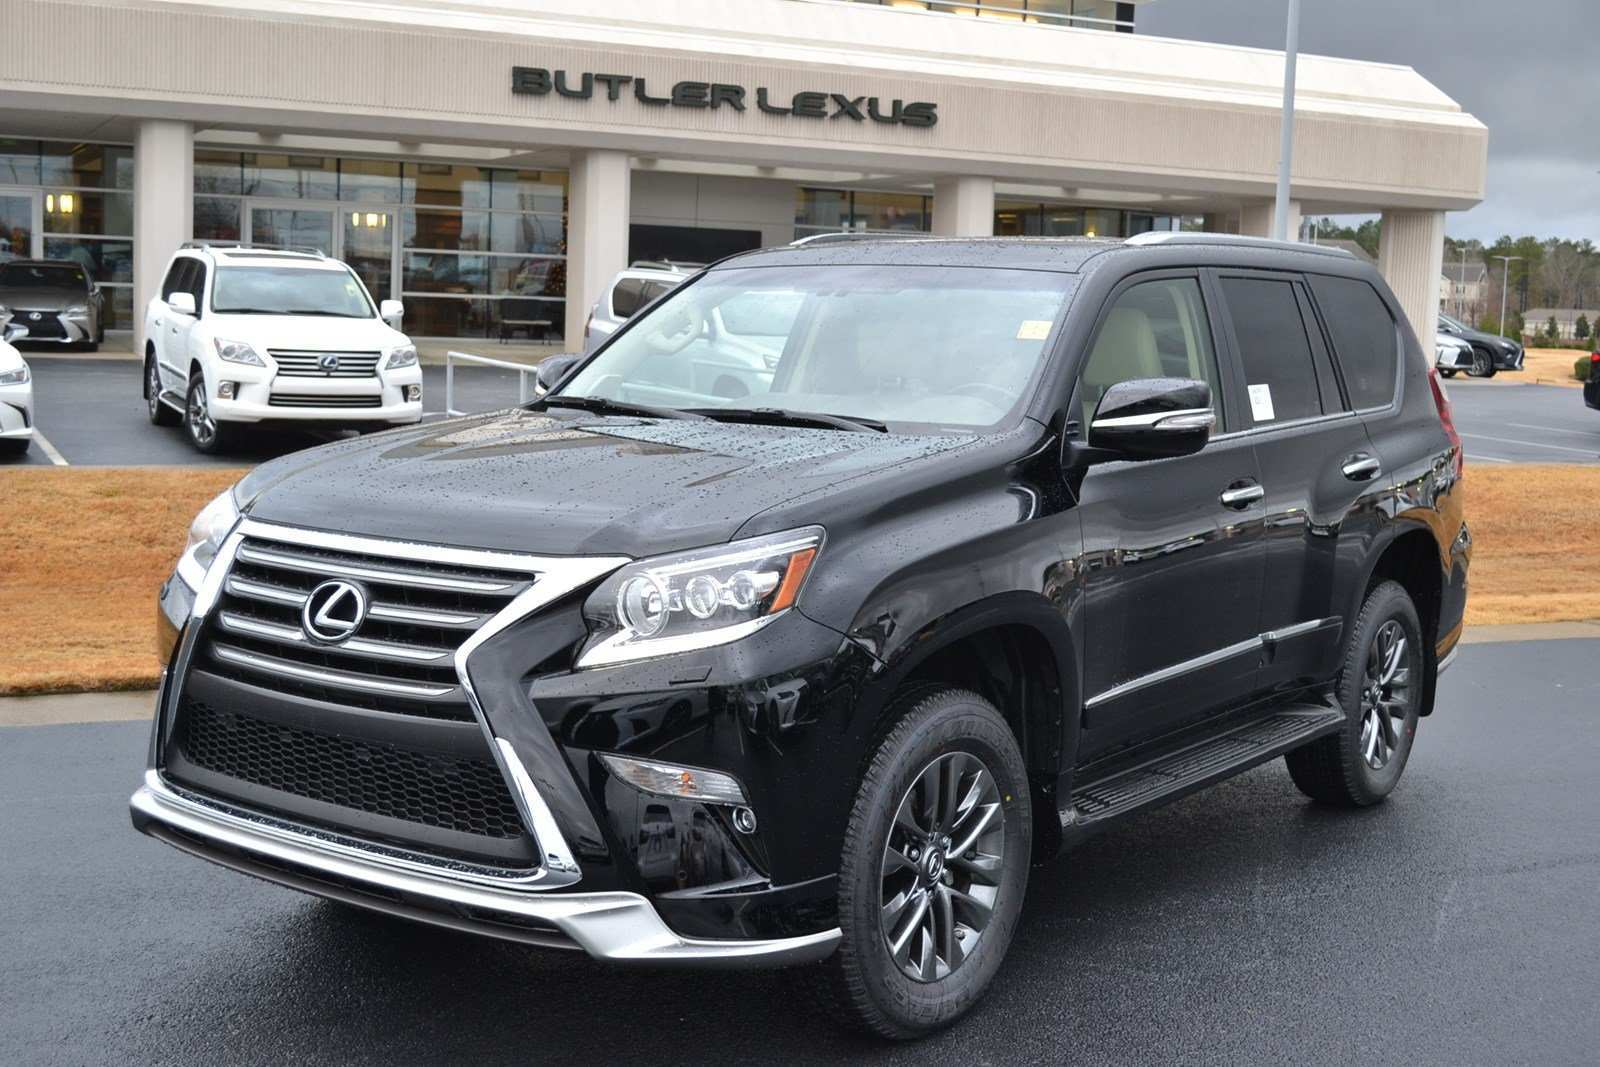 75 Concept of Lexus Gx 460 Pictures New Concept with Lexus Gx 460 Pictures